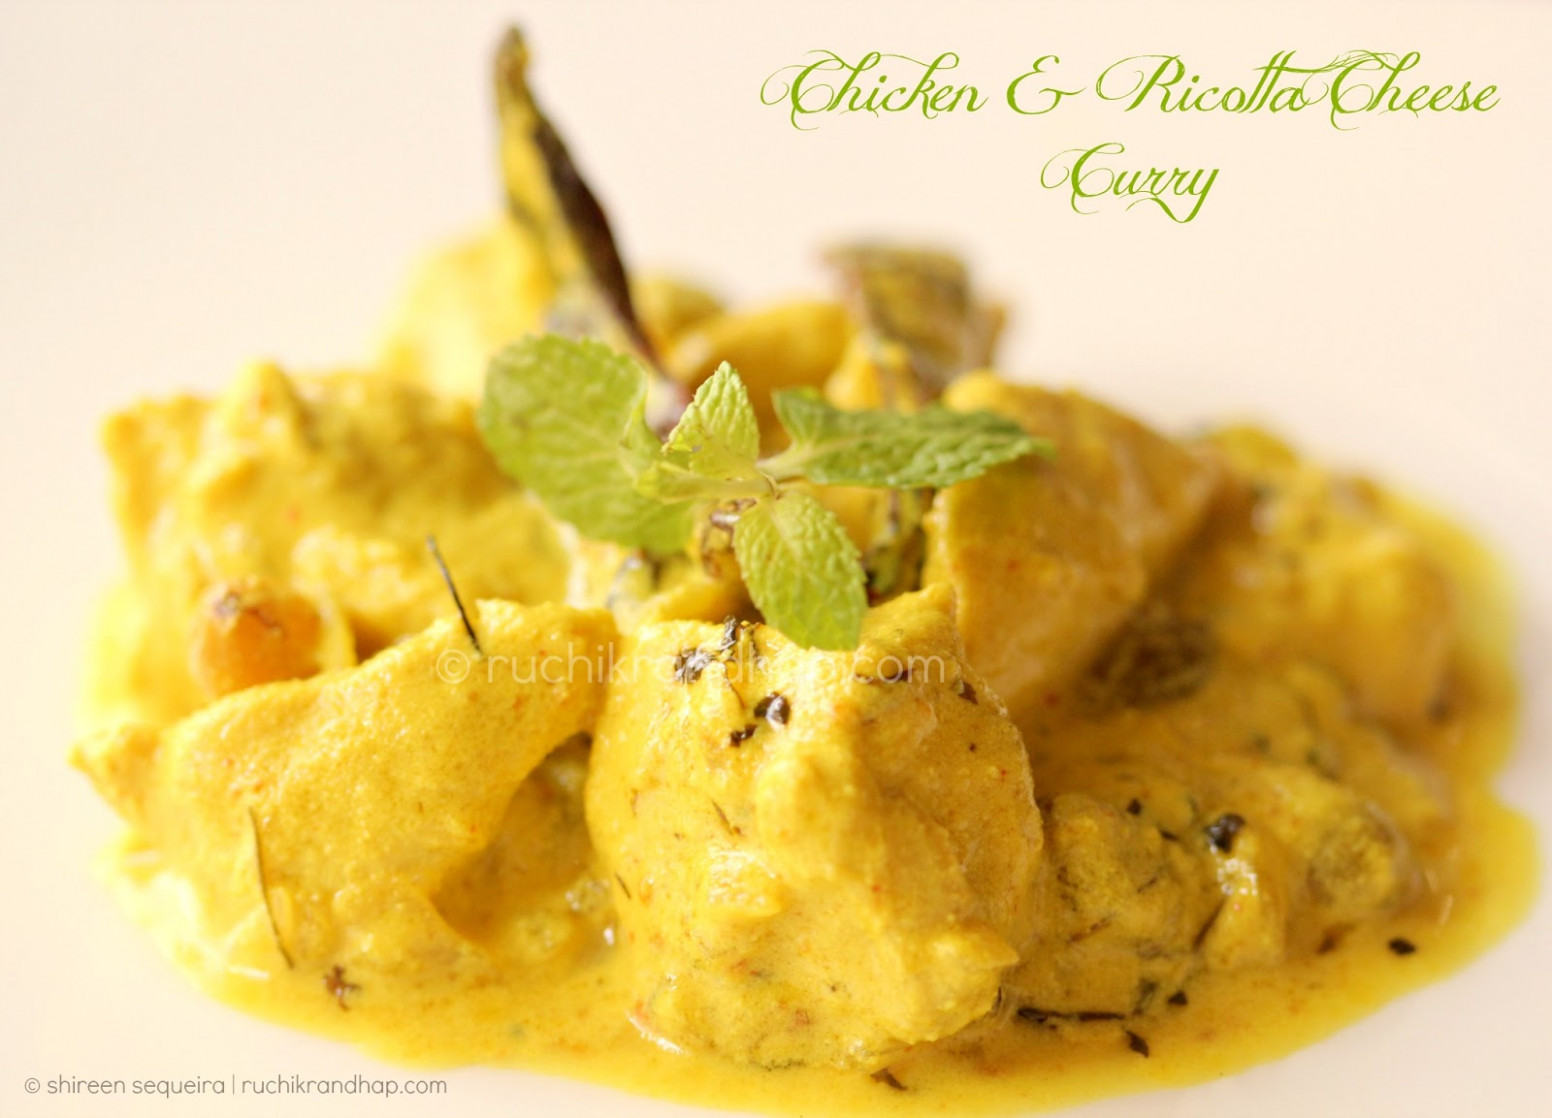 Chicken & Ricotta Cheese Curry | Ruchik Randhap - vikas khanna recipes chicken